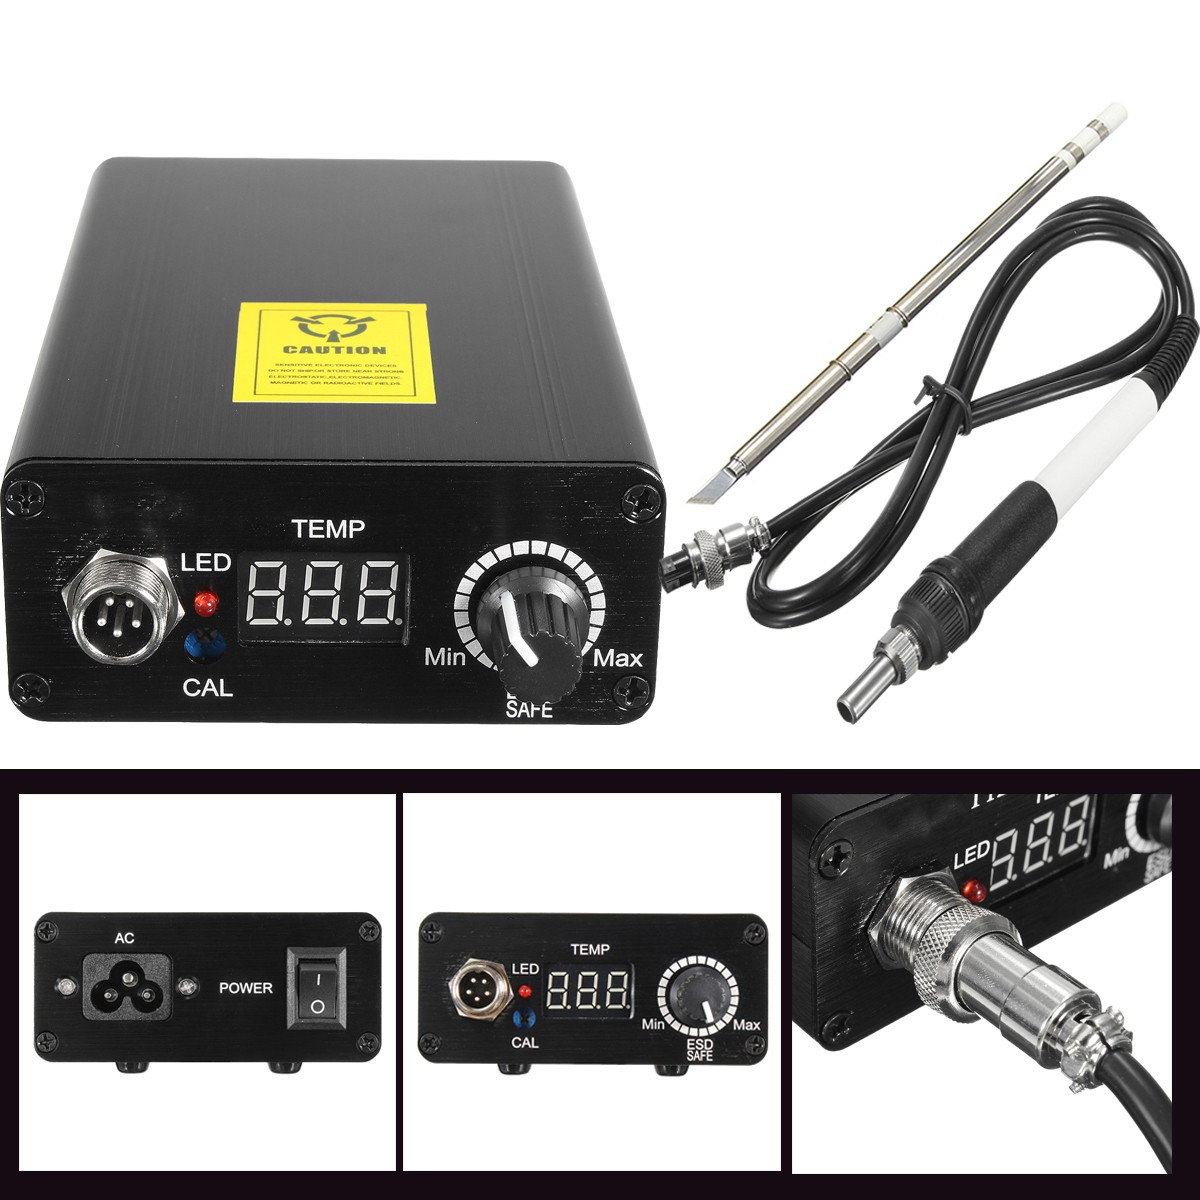 T12 Soldering Station Electronic Welding Iron for HAKKO T12 Handle T12 K Tips LED Digital Soldering